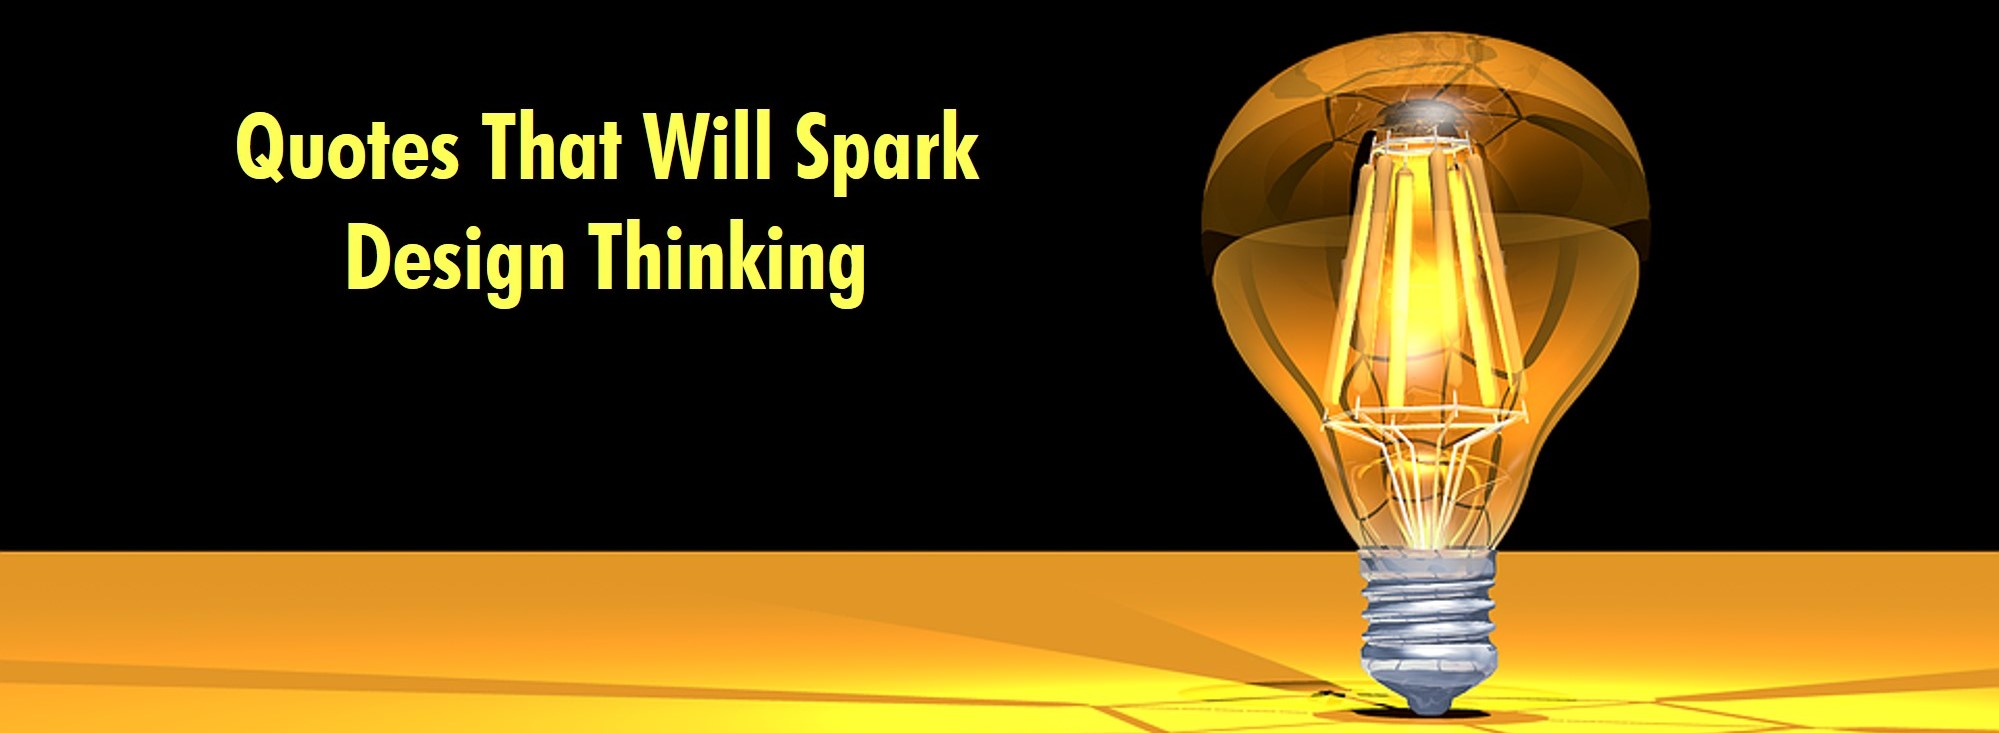 Inspirational Quotes That Will Spark Service Design Thinking